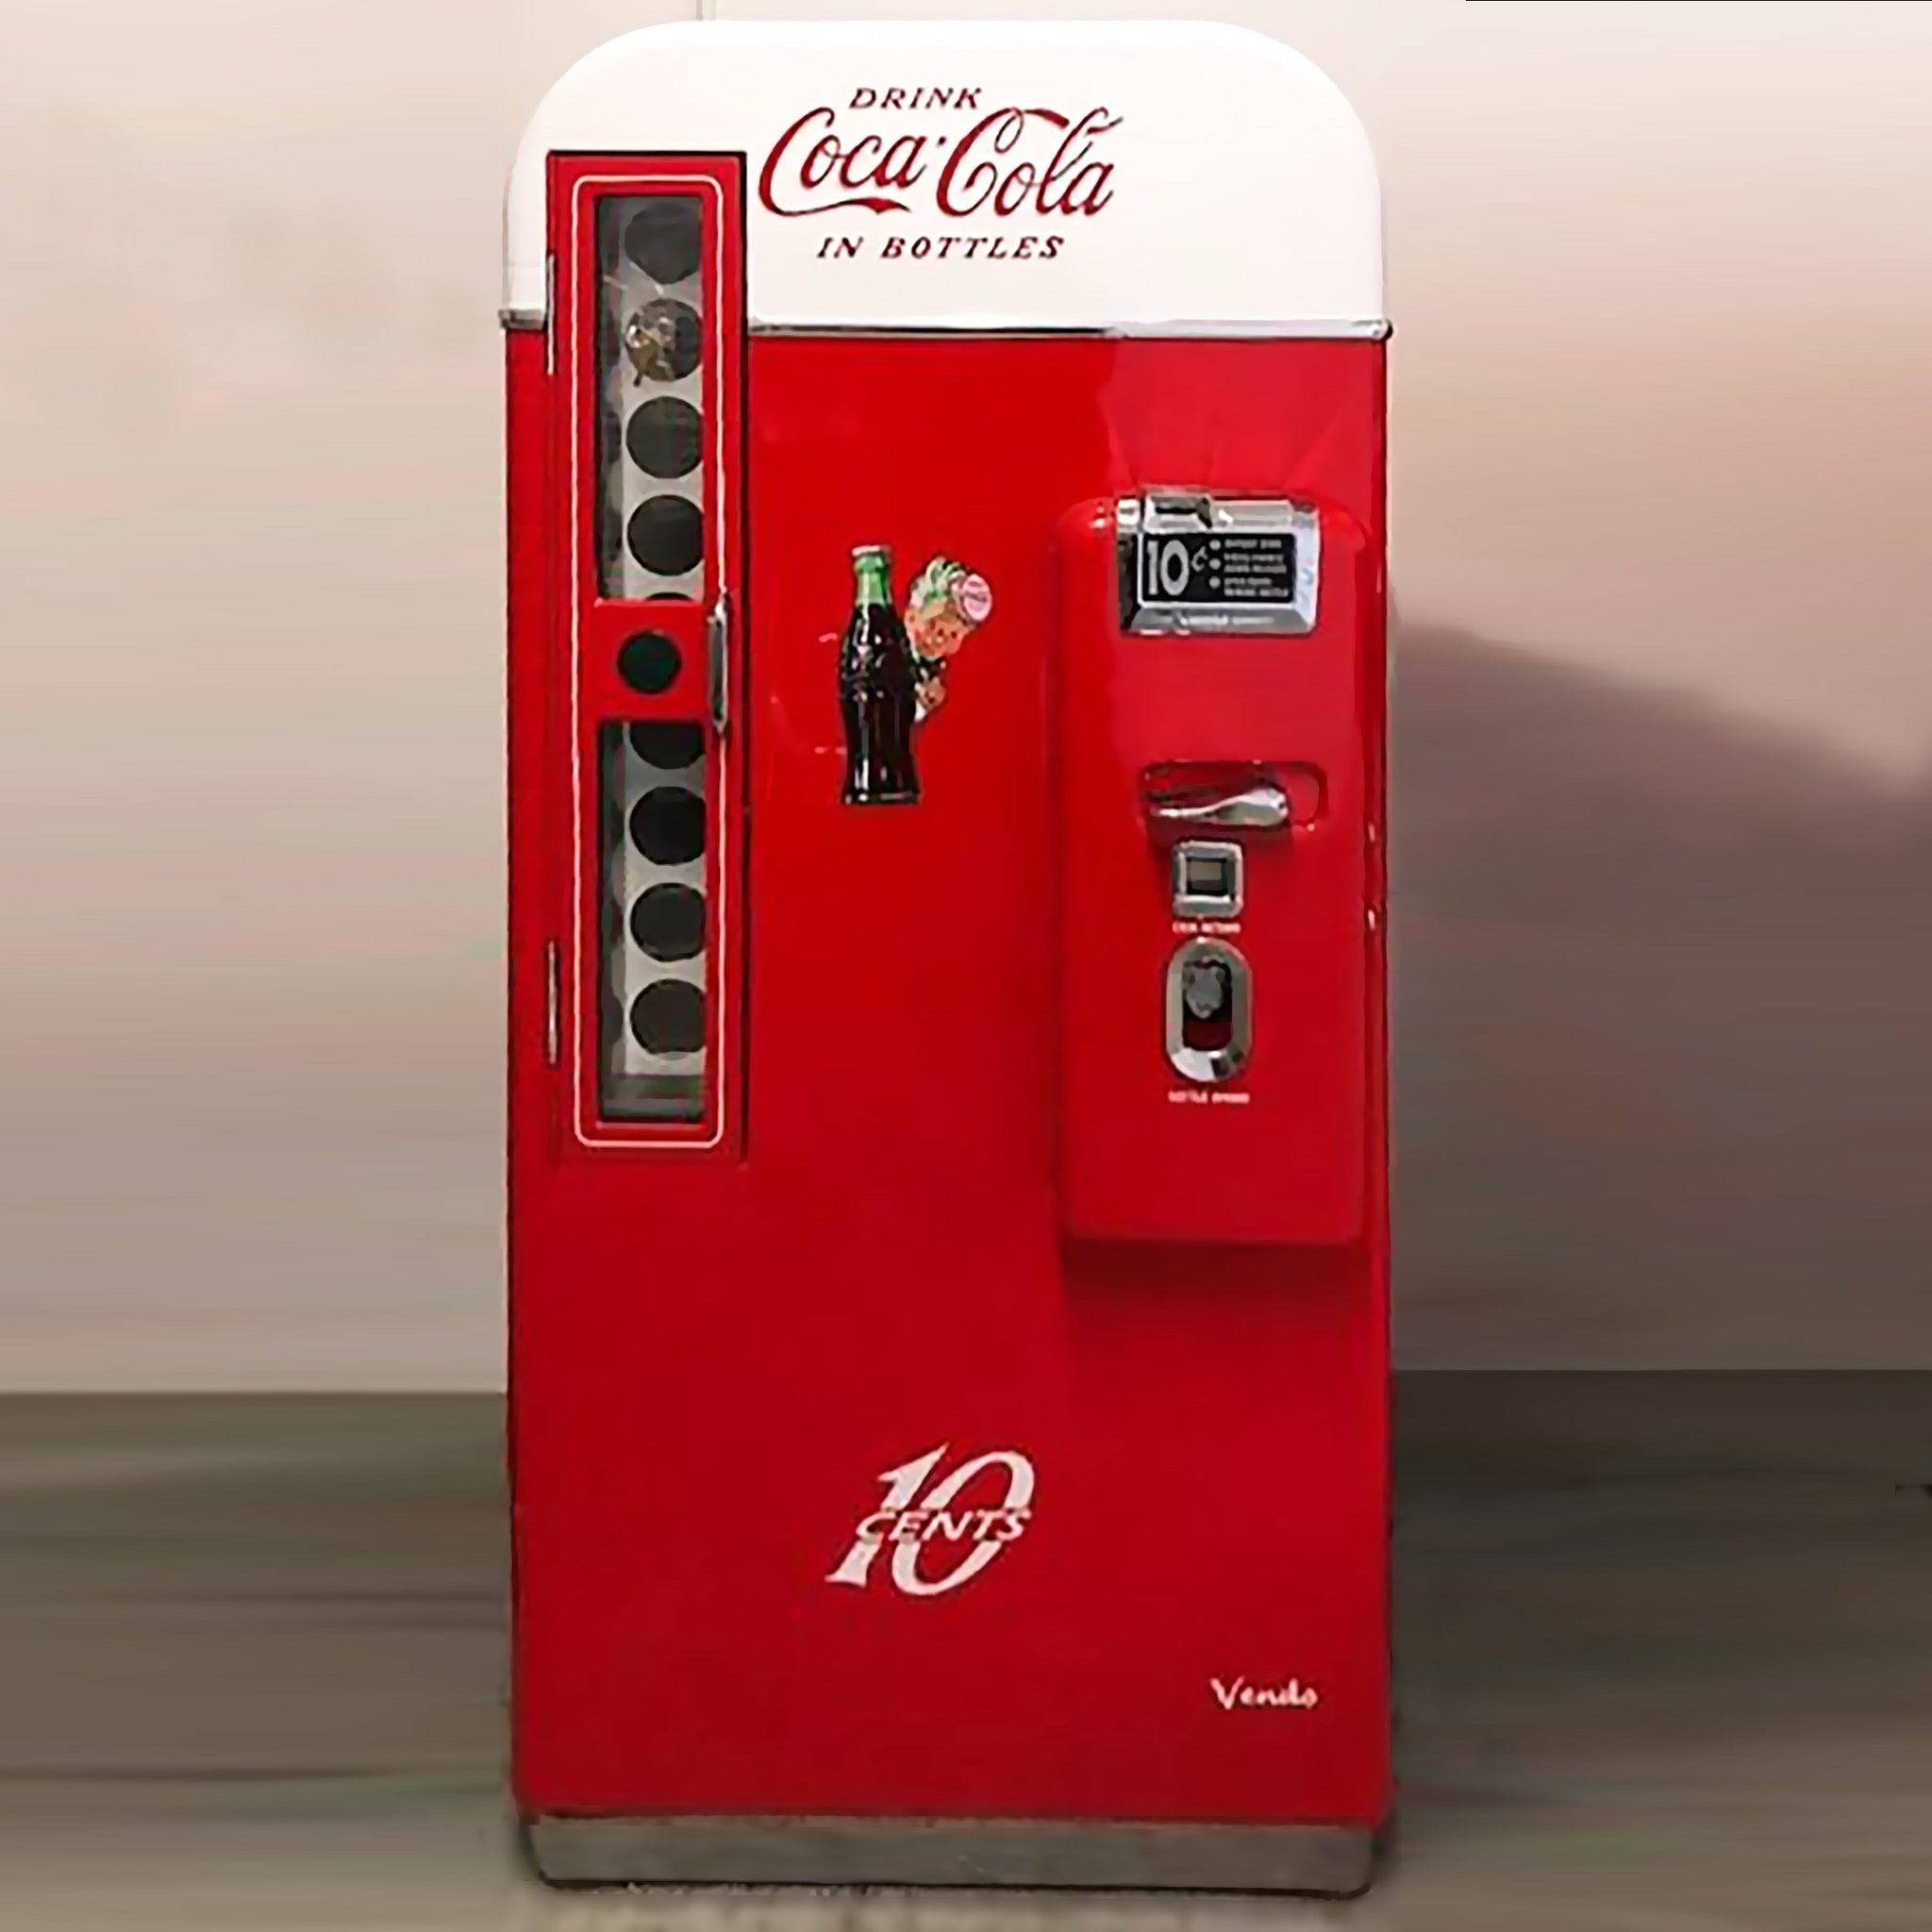 Vendo H81-A Coca-Cola Machine